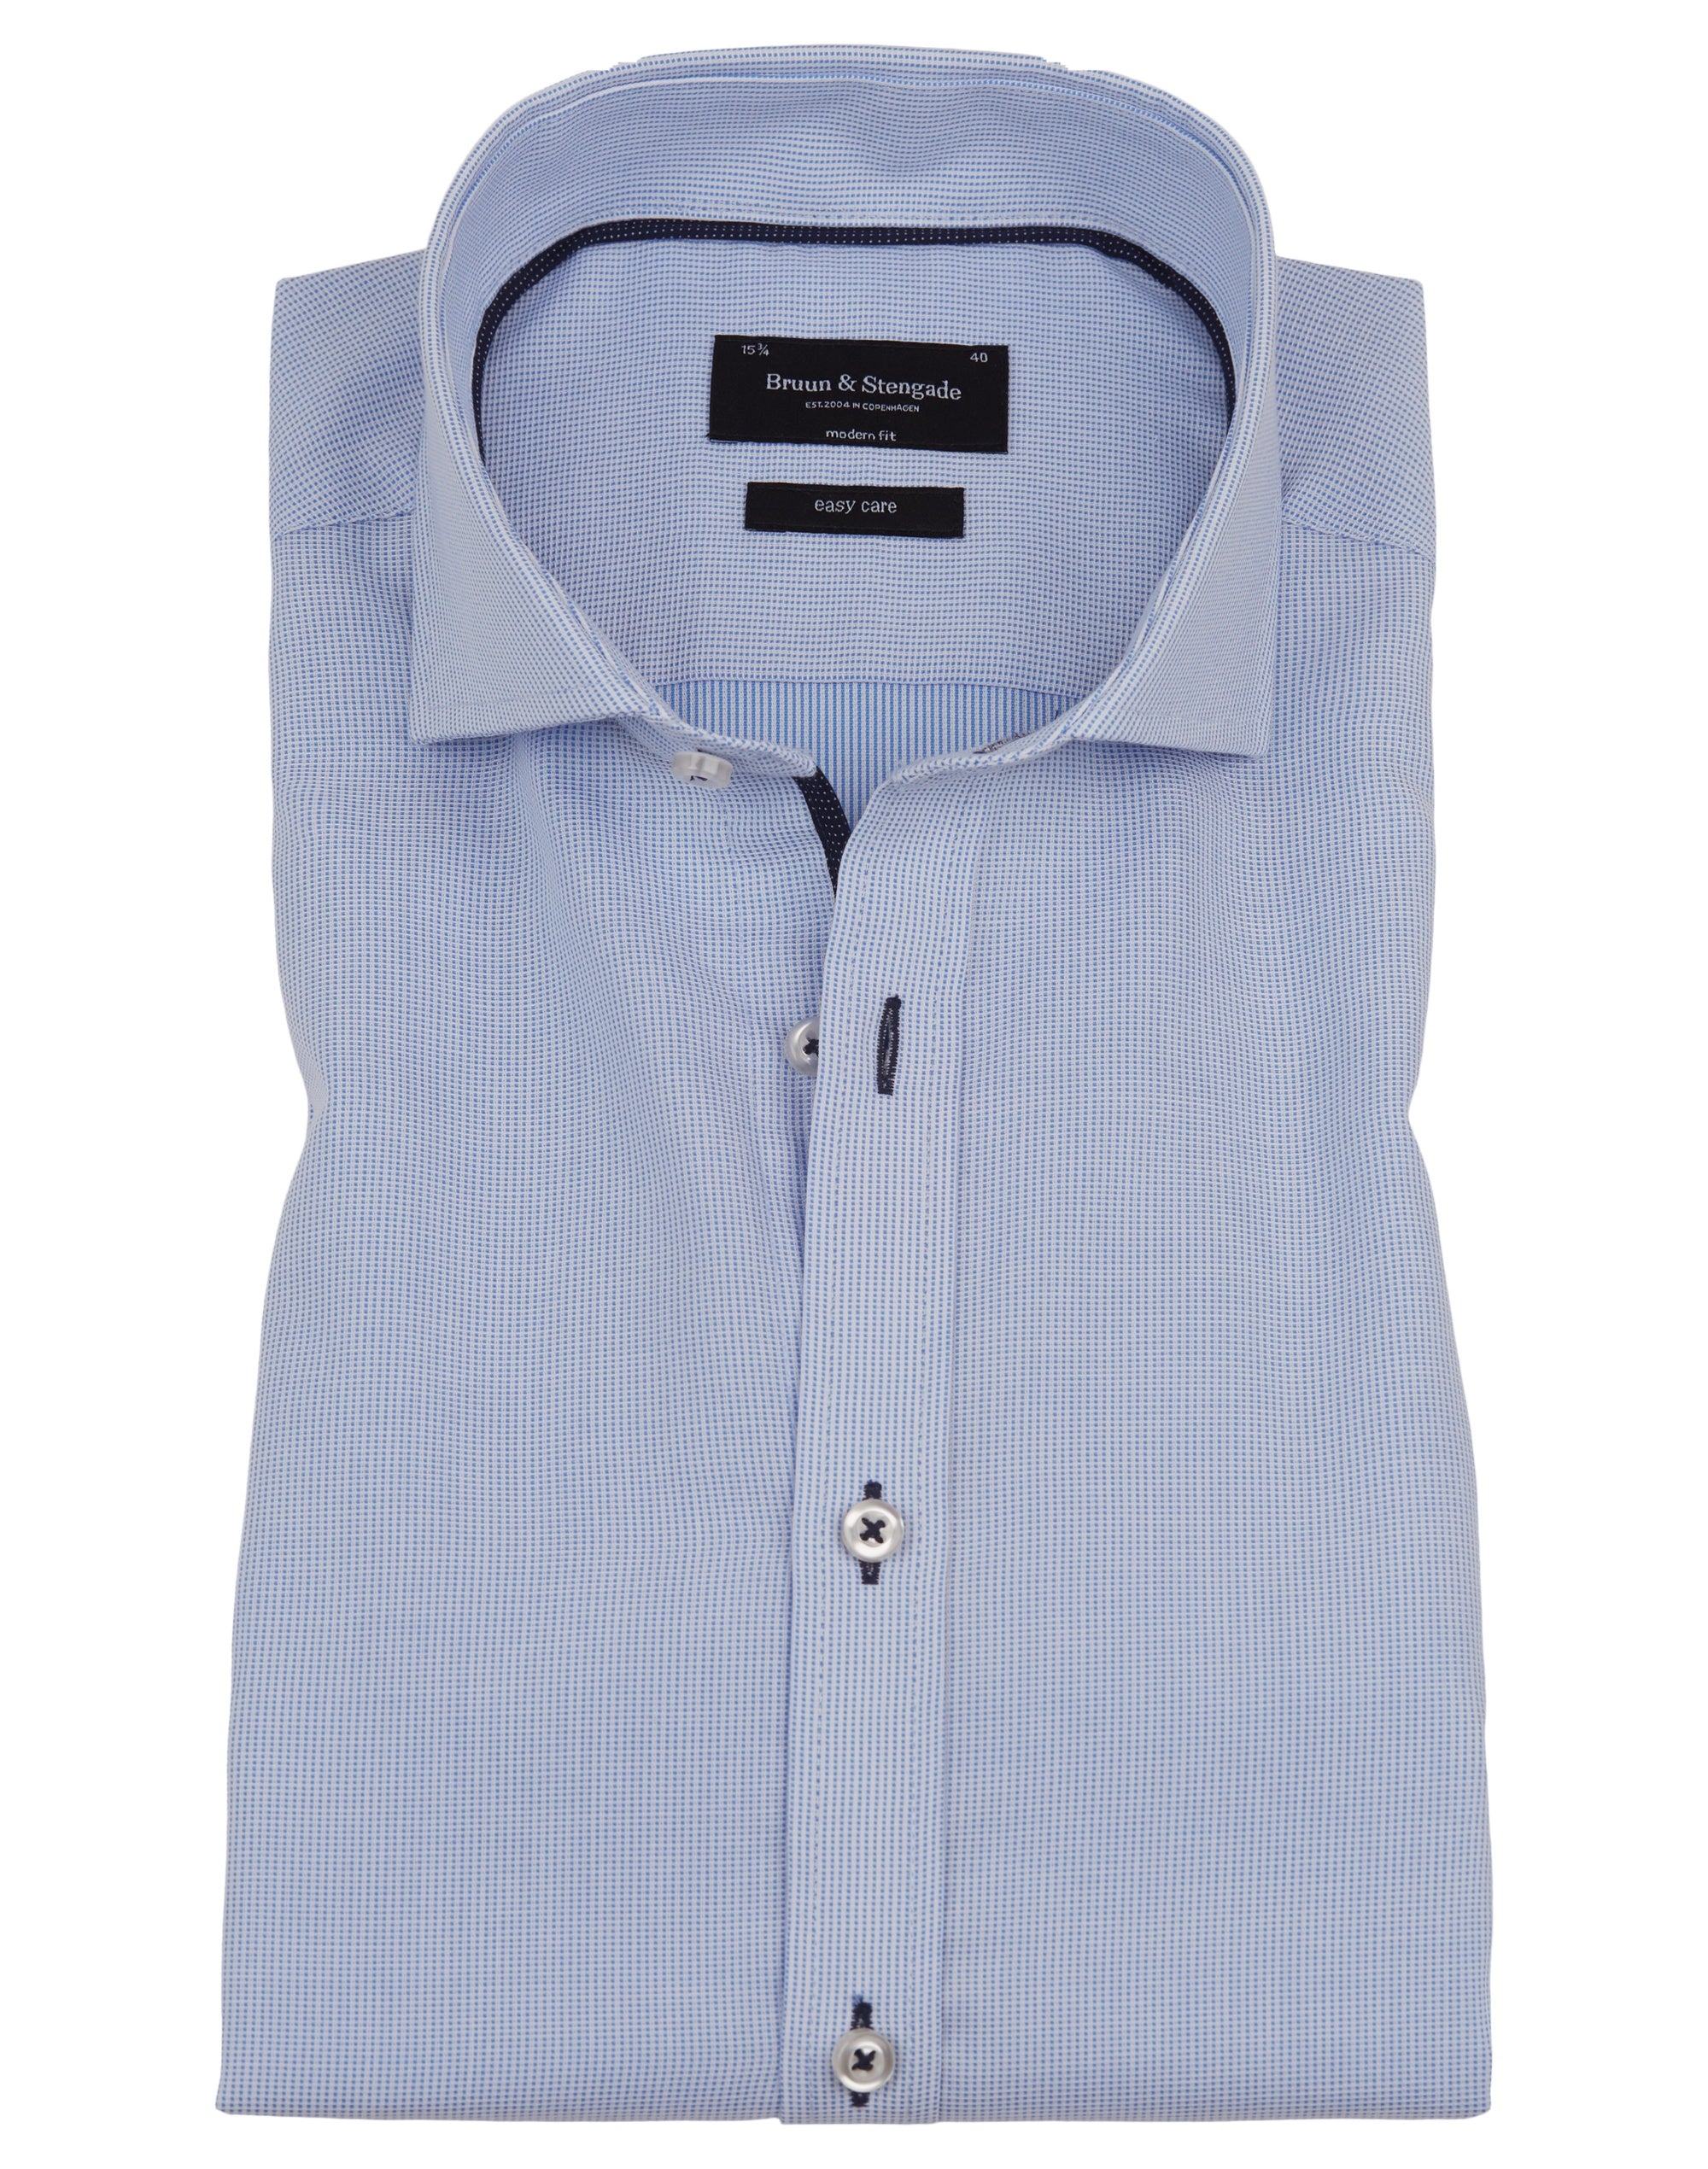 Bruun & Stengade Taggart Micro Check Soft Woven Shirt